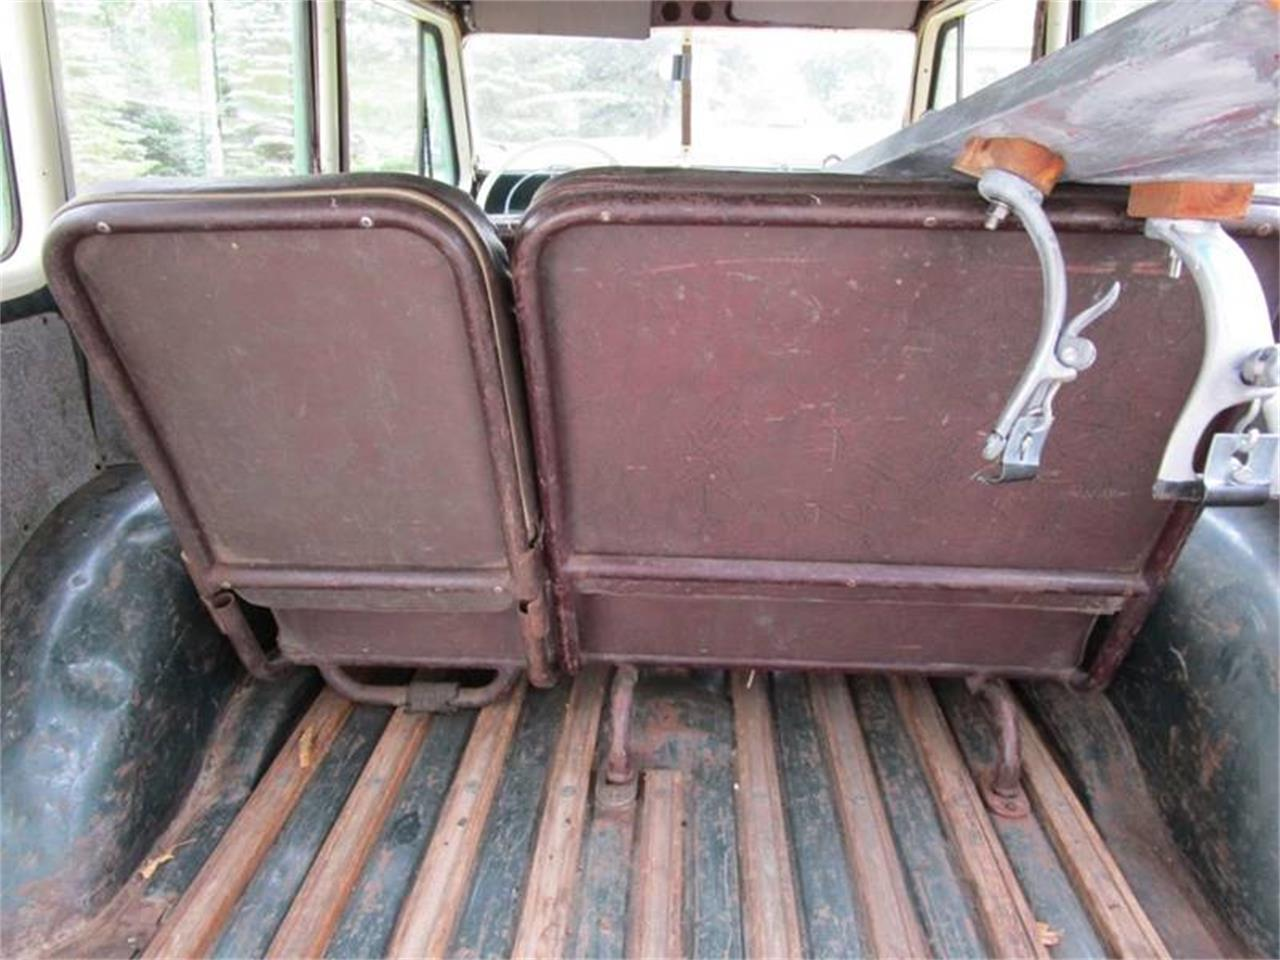 1950 Willys Jeep for sale in Stanley, WI – photo 41